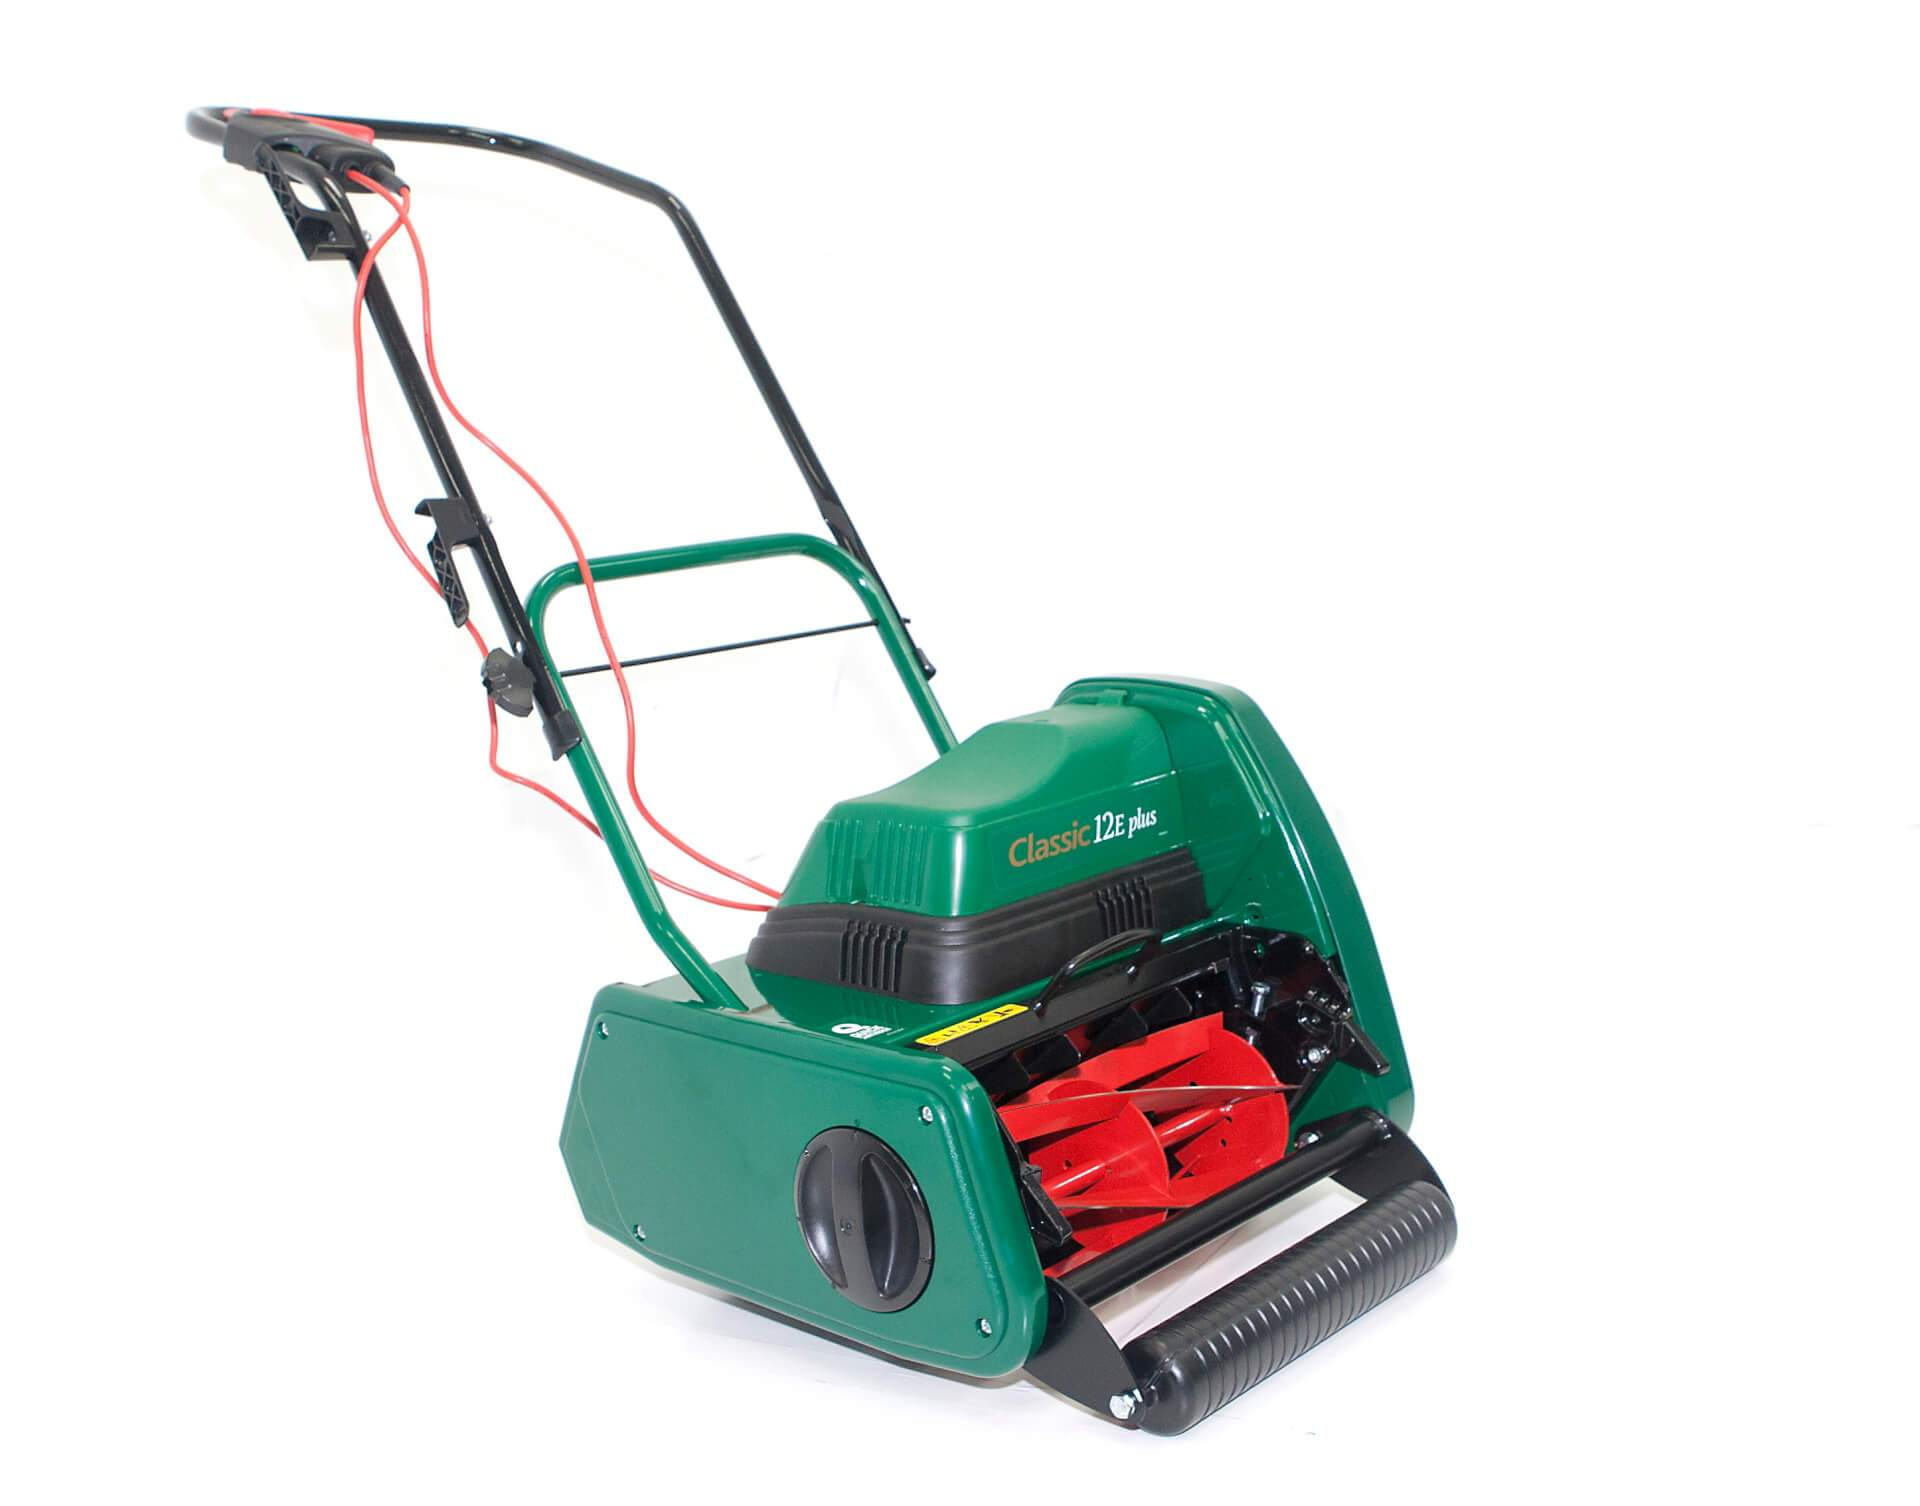 Allett Classic 12E Plus Electric Cylinder Mower | Plymouth Garden Machinery